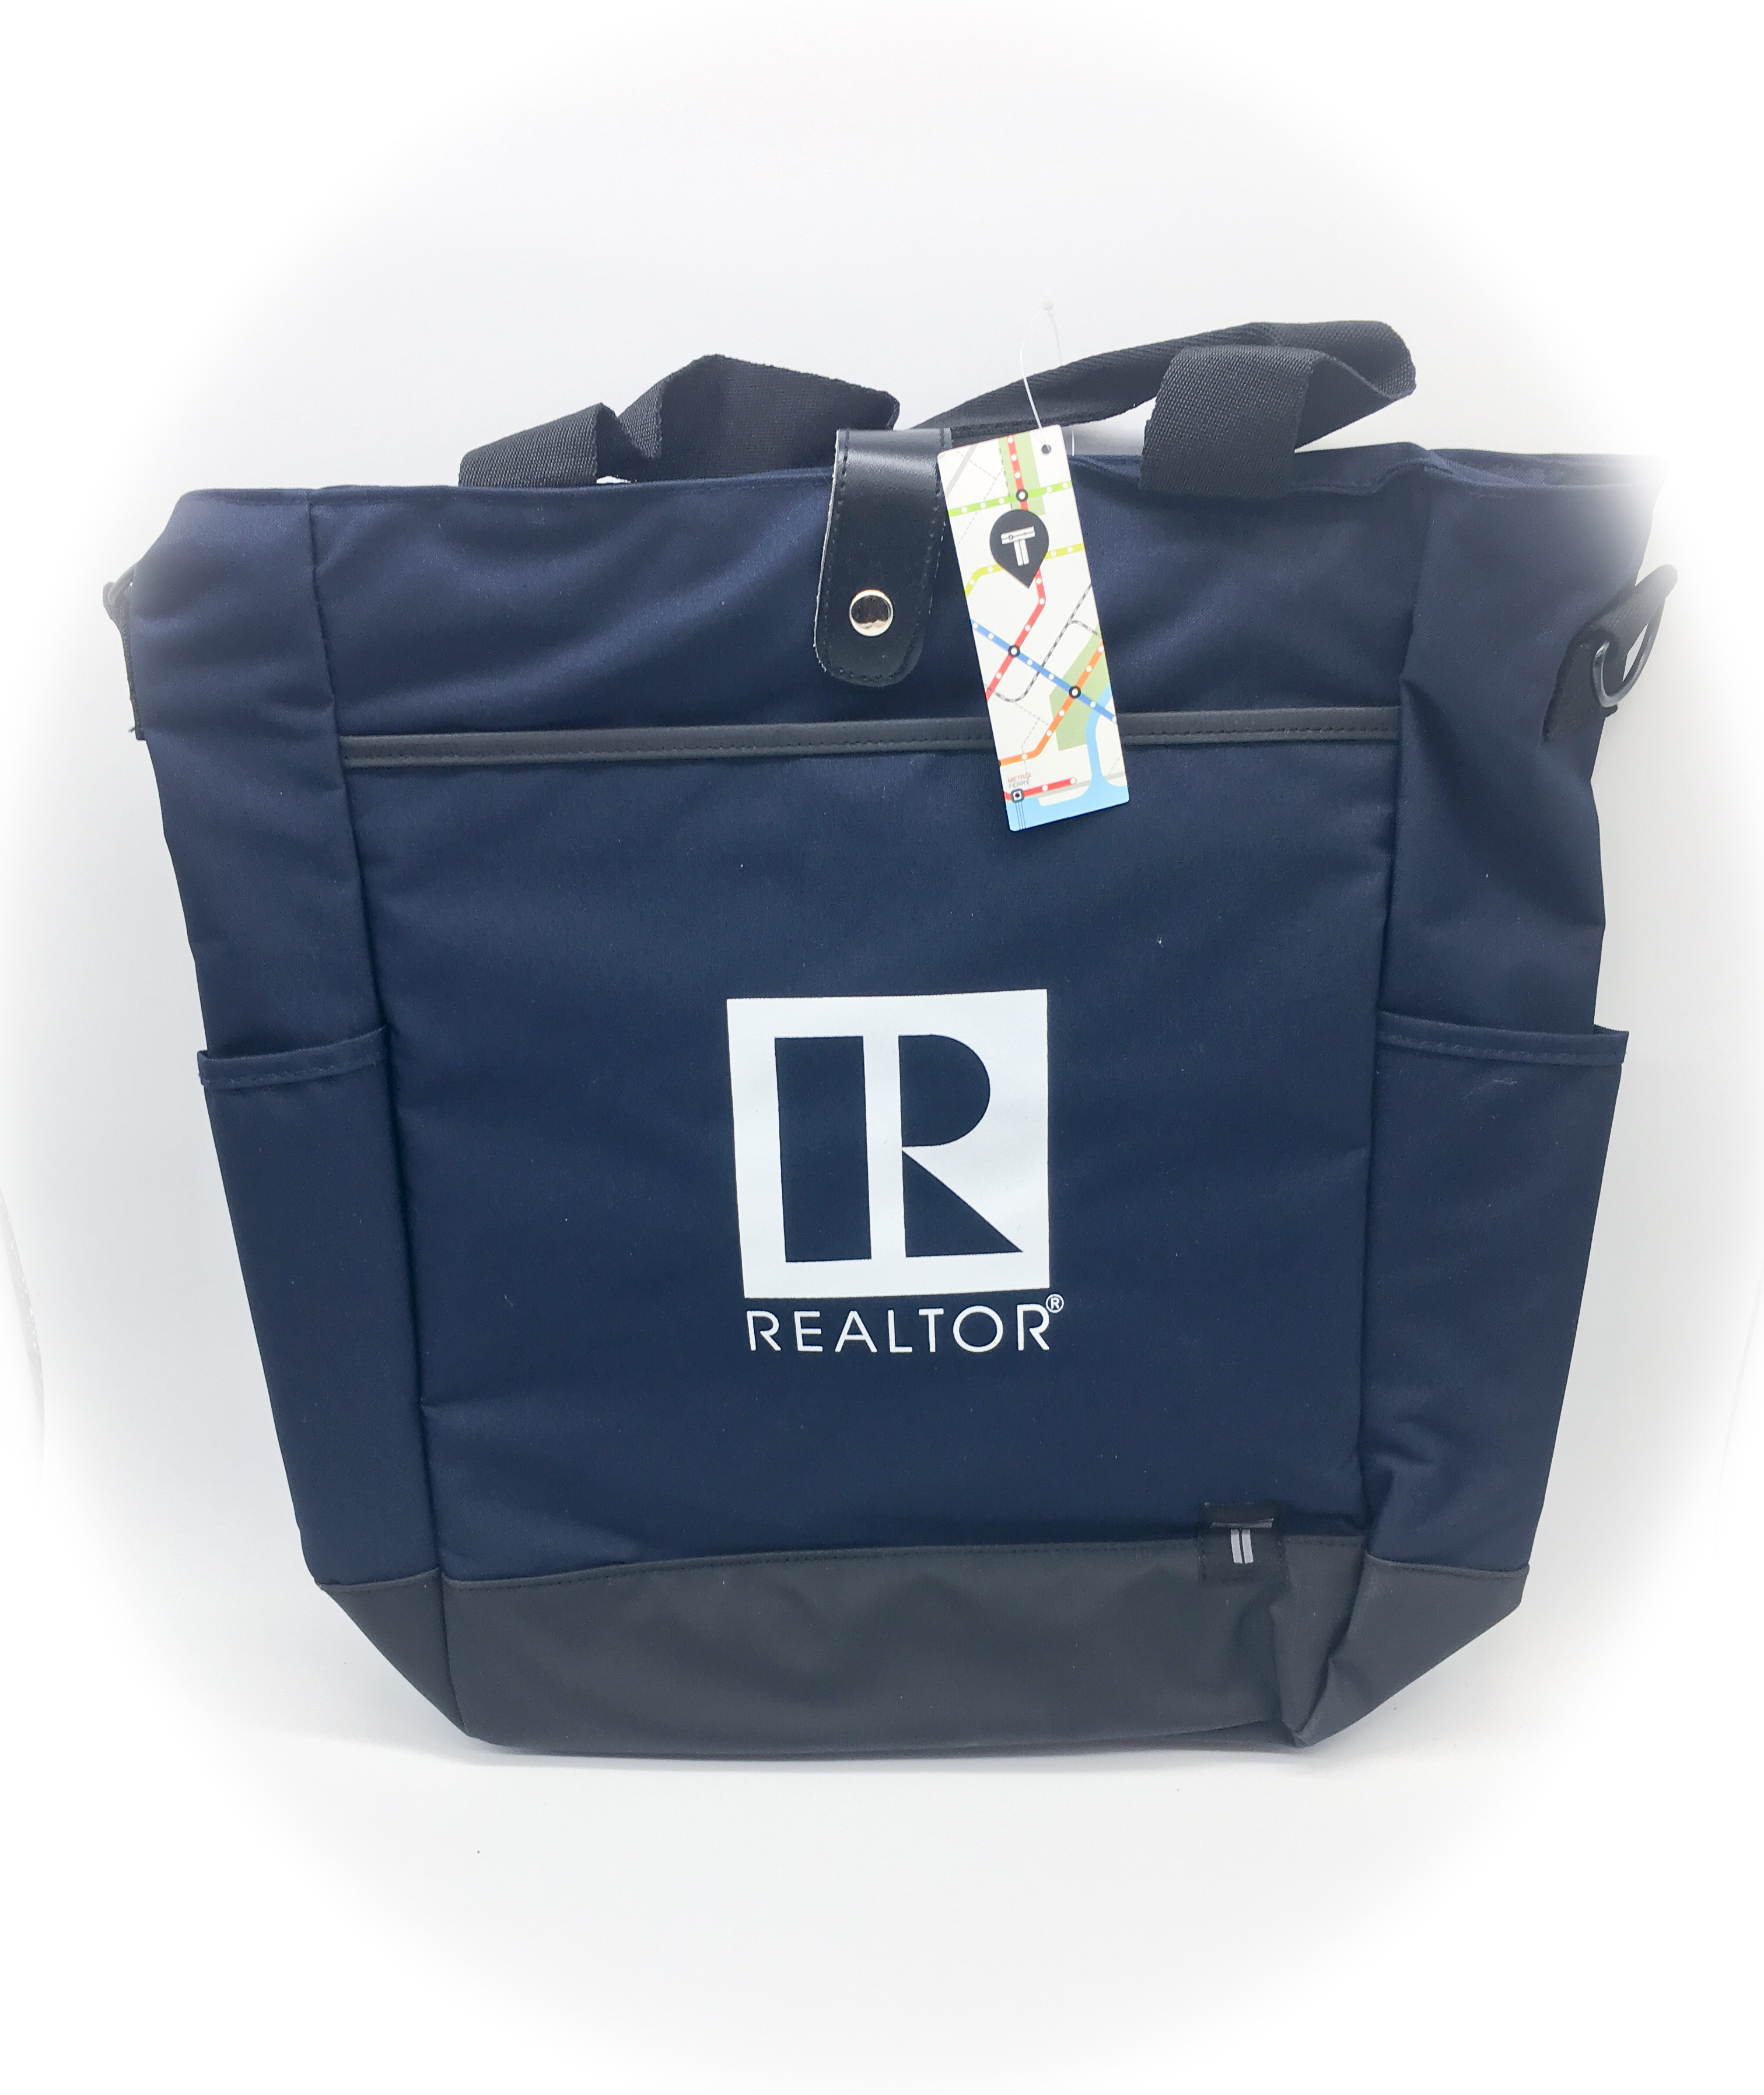 Tranzip Tall 15 Computer Tote - More stock June 30 2019 - RTS4665